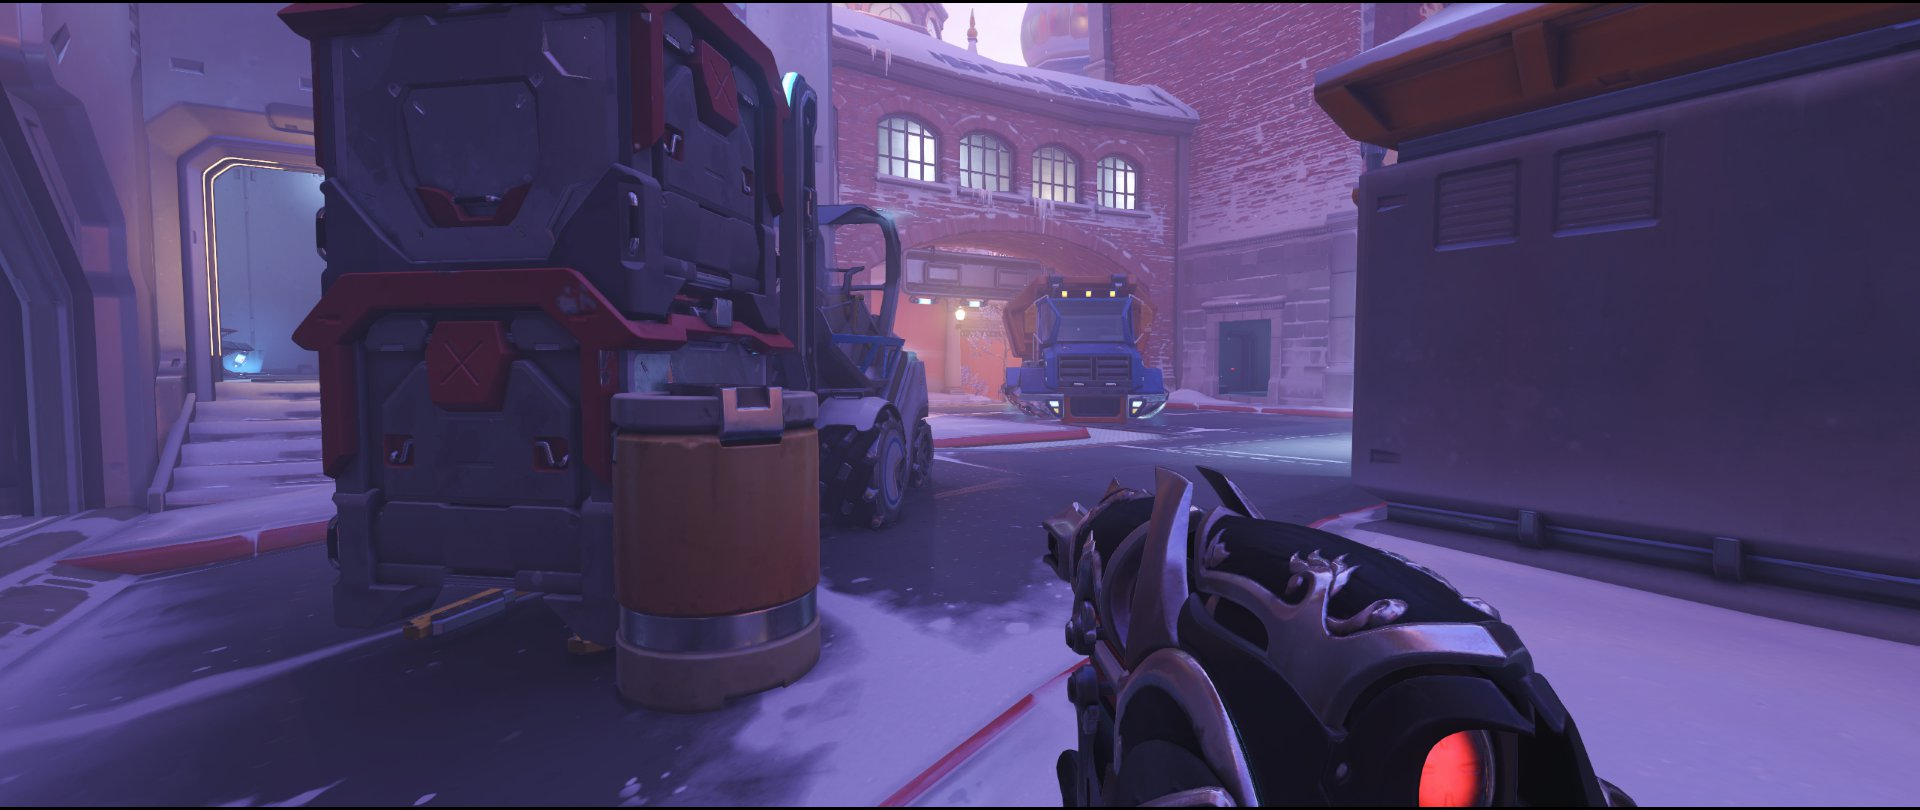 Mid defense sniping spot Widowmaker Volskaya Industries Overwatch.jpg